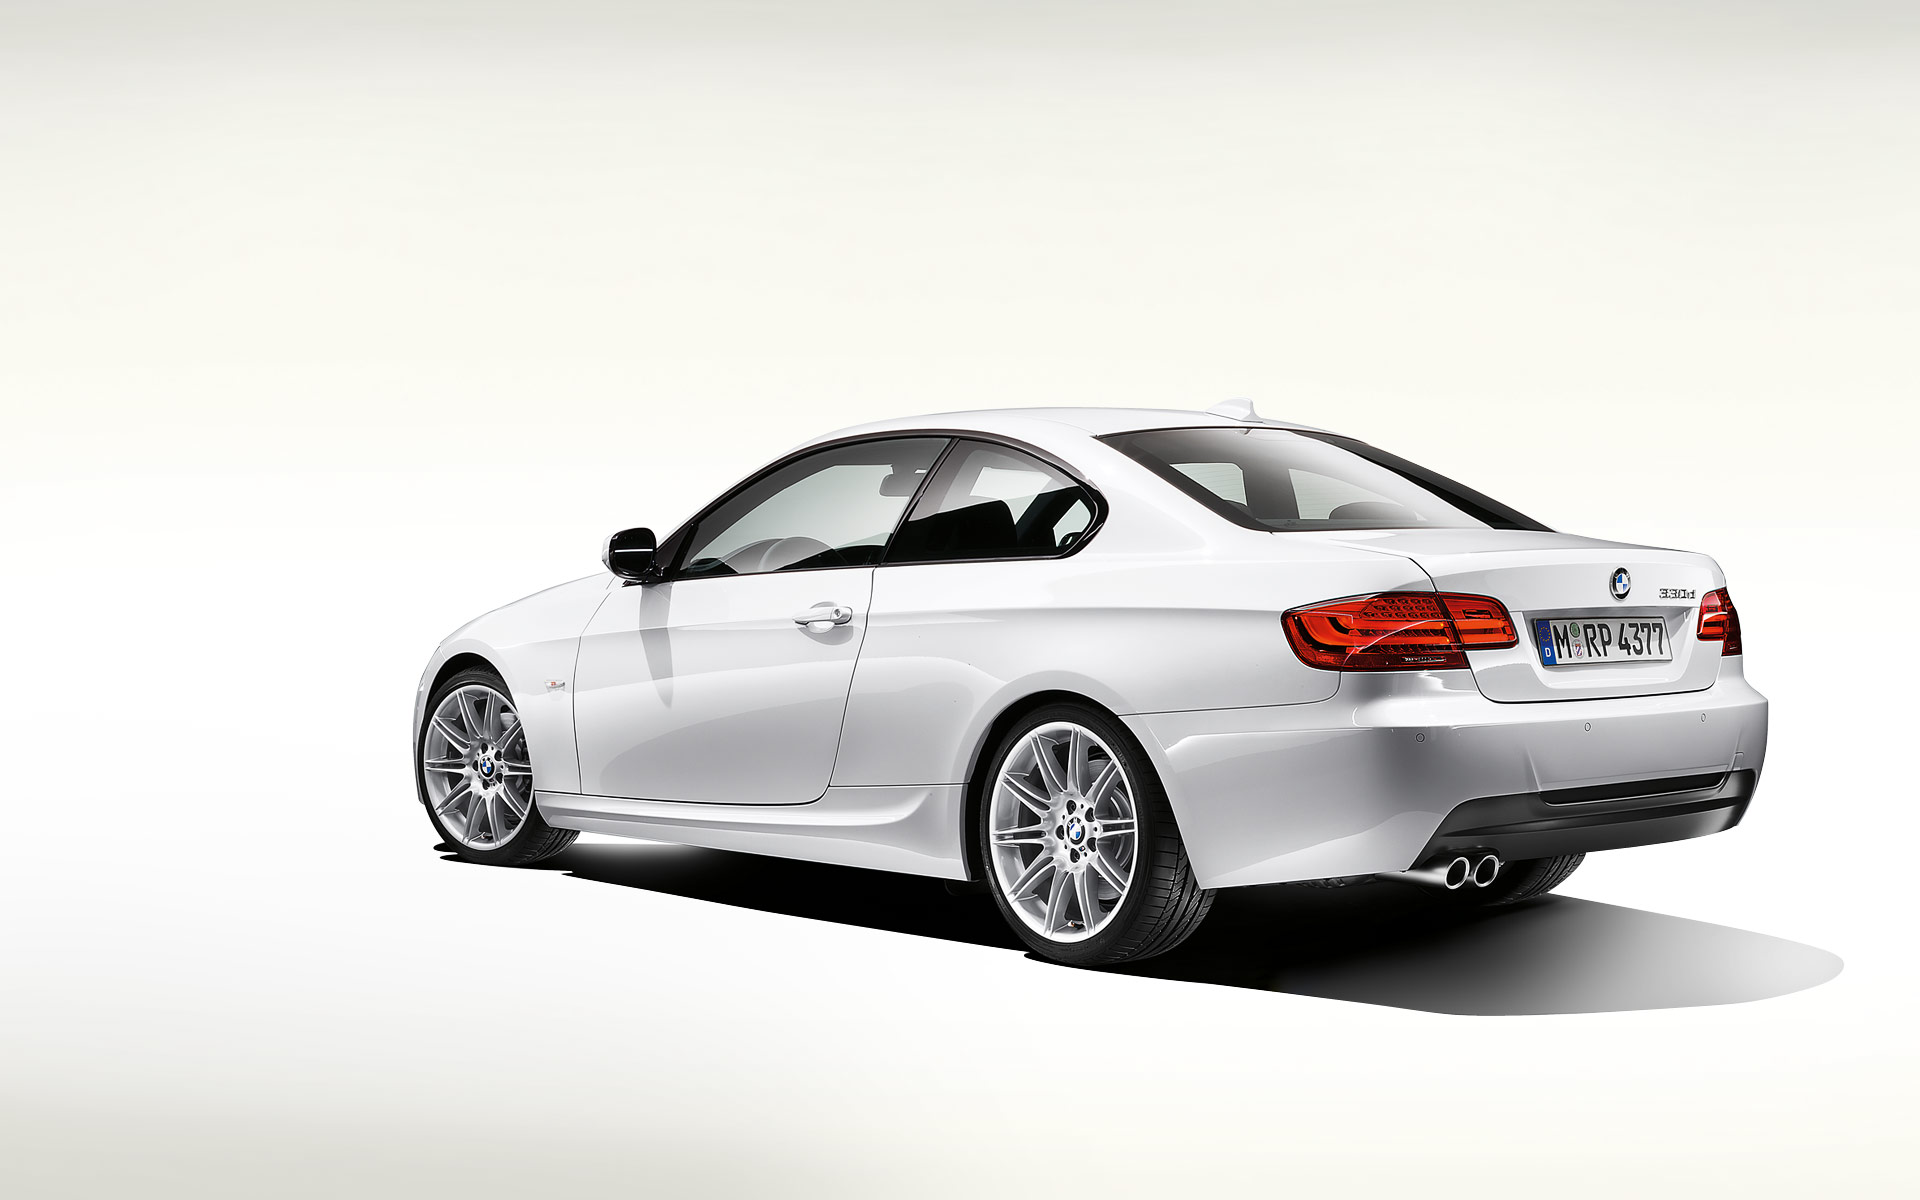 2011 BMW 3-Series Coupe Wallpapers